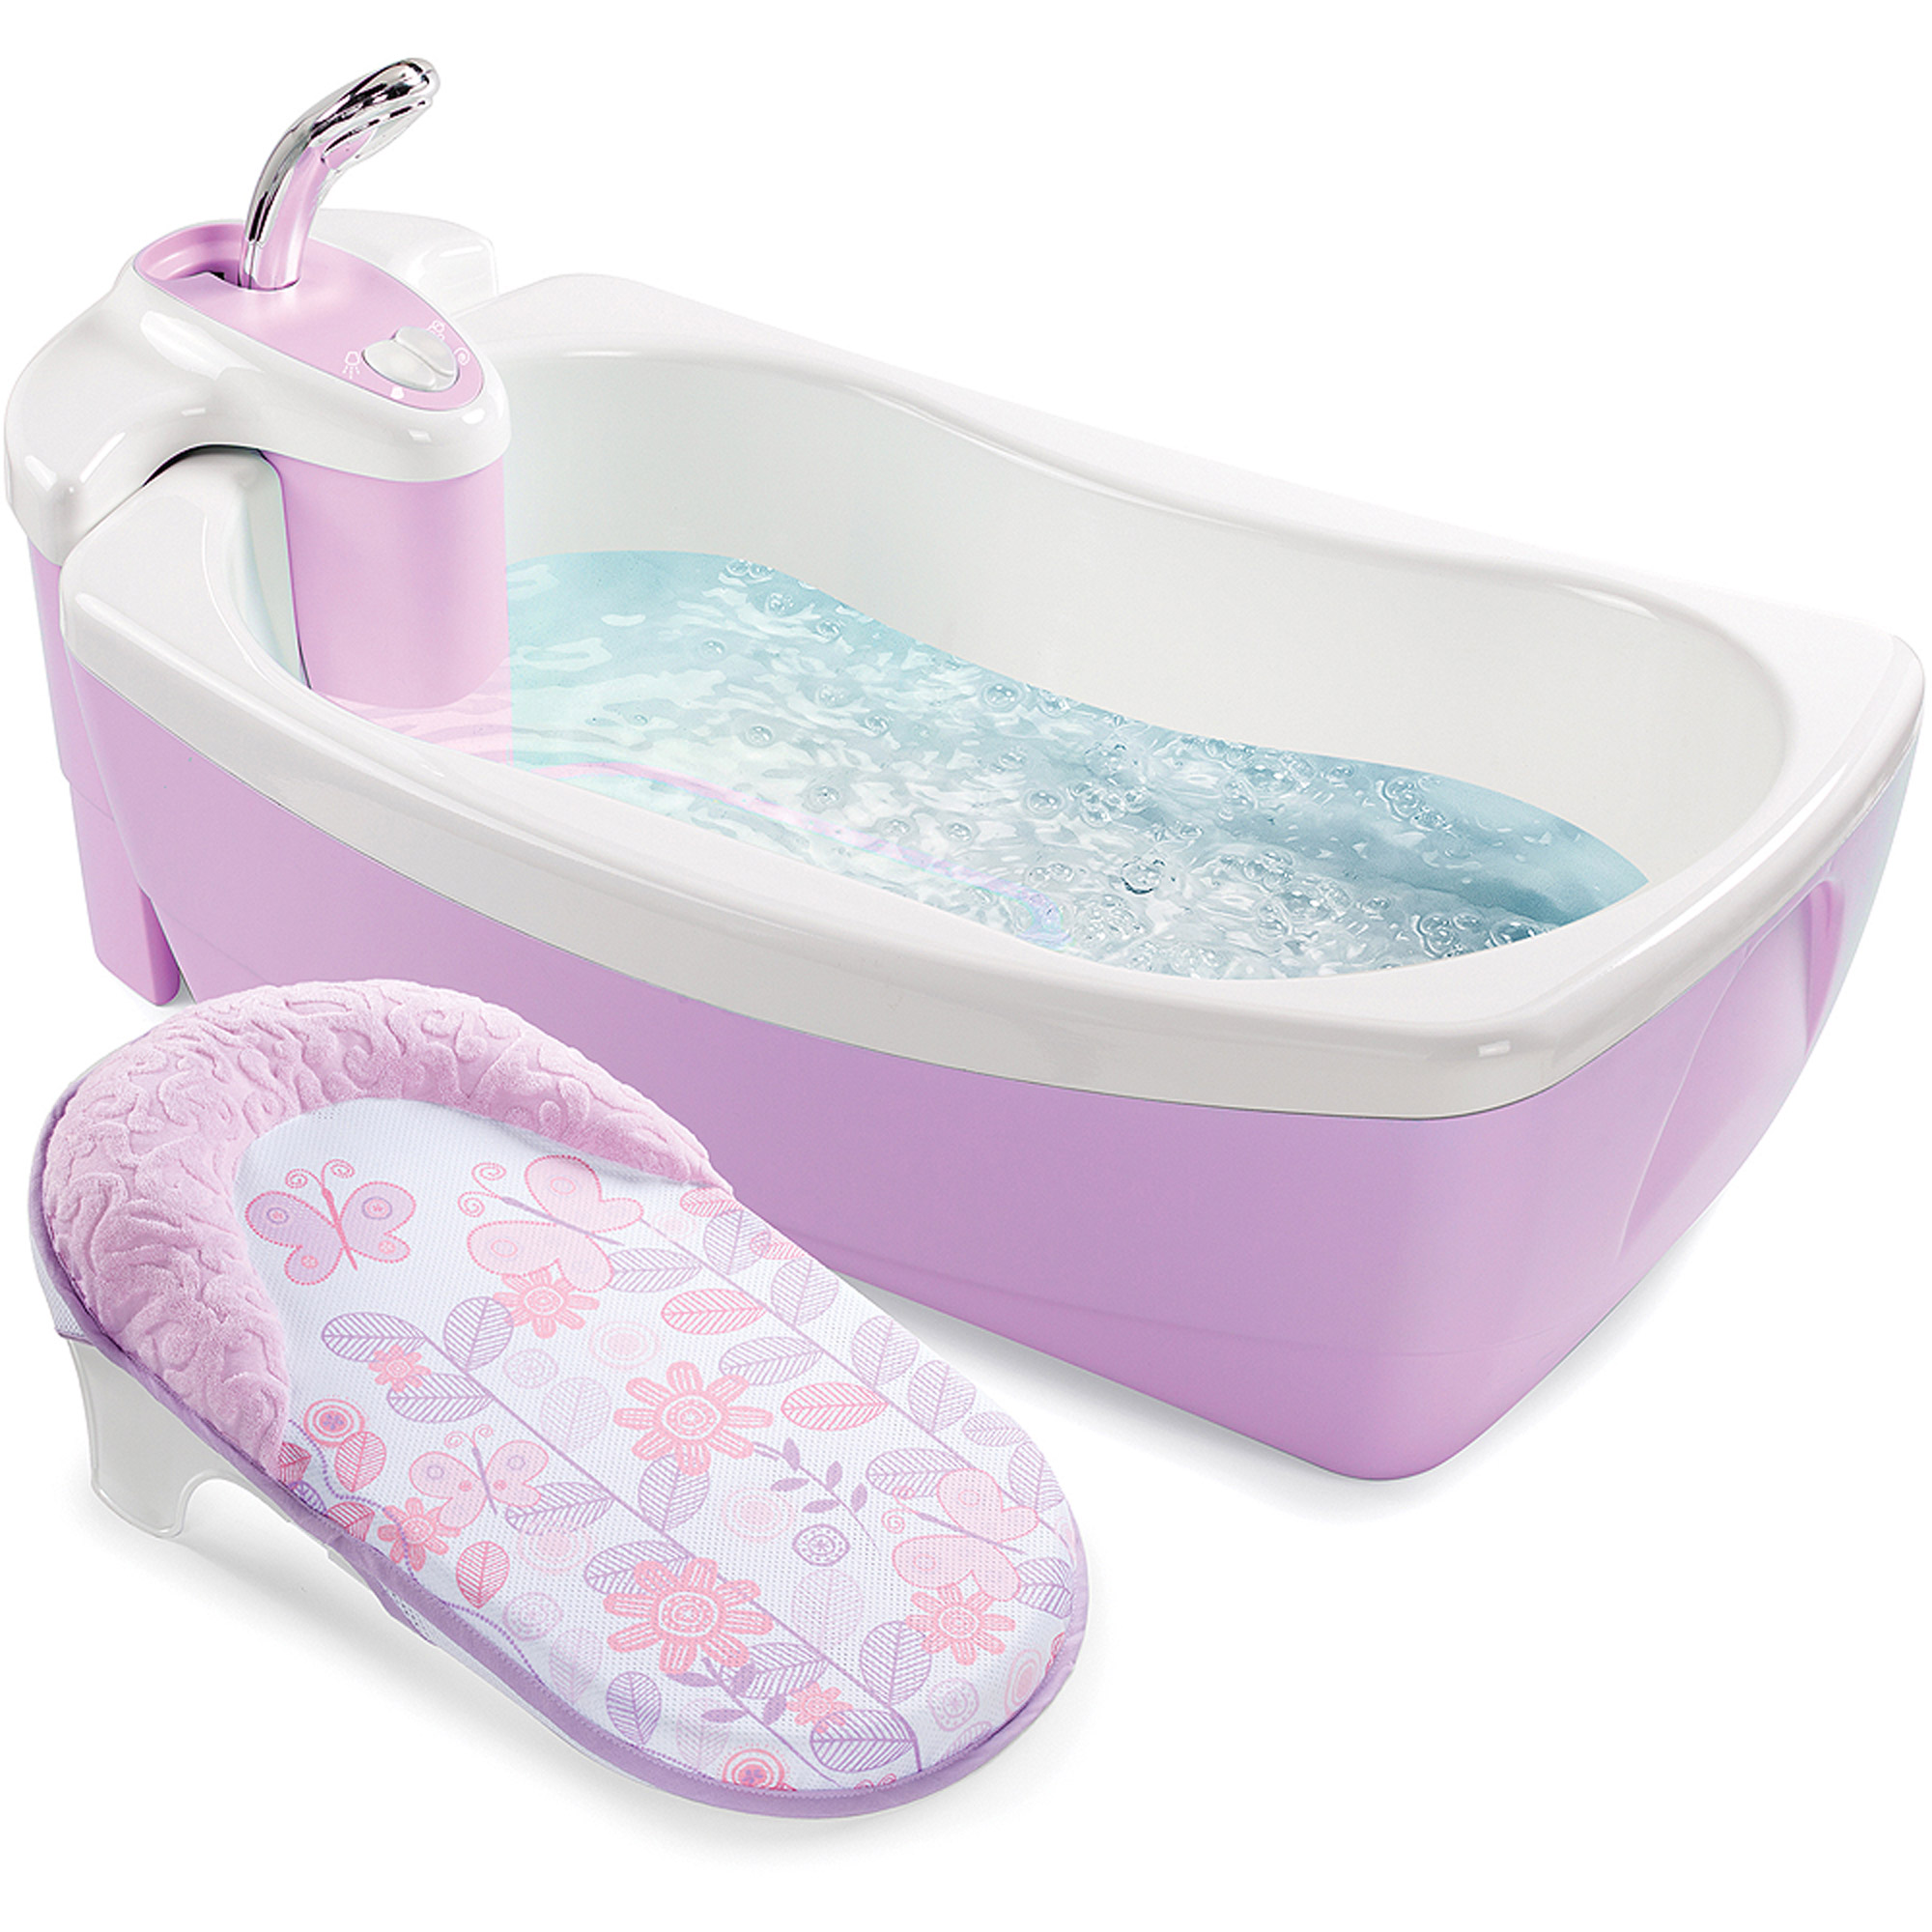 Summer Infant Lil' Luxuries Whirlpool, Bubbling Spa and Shower